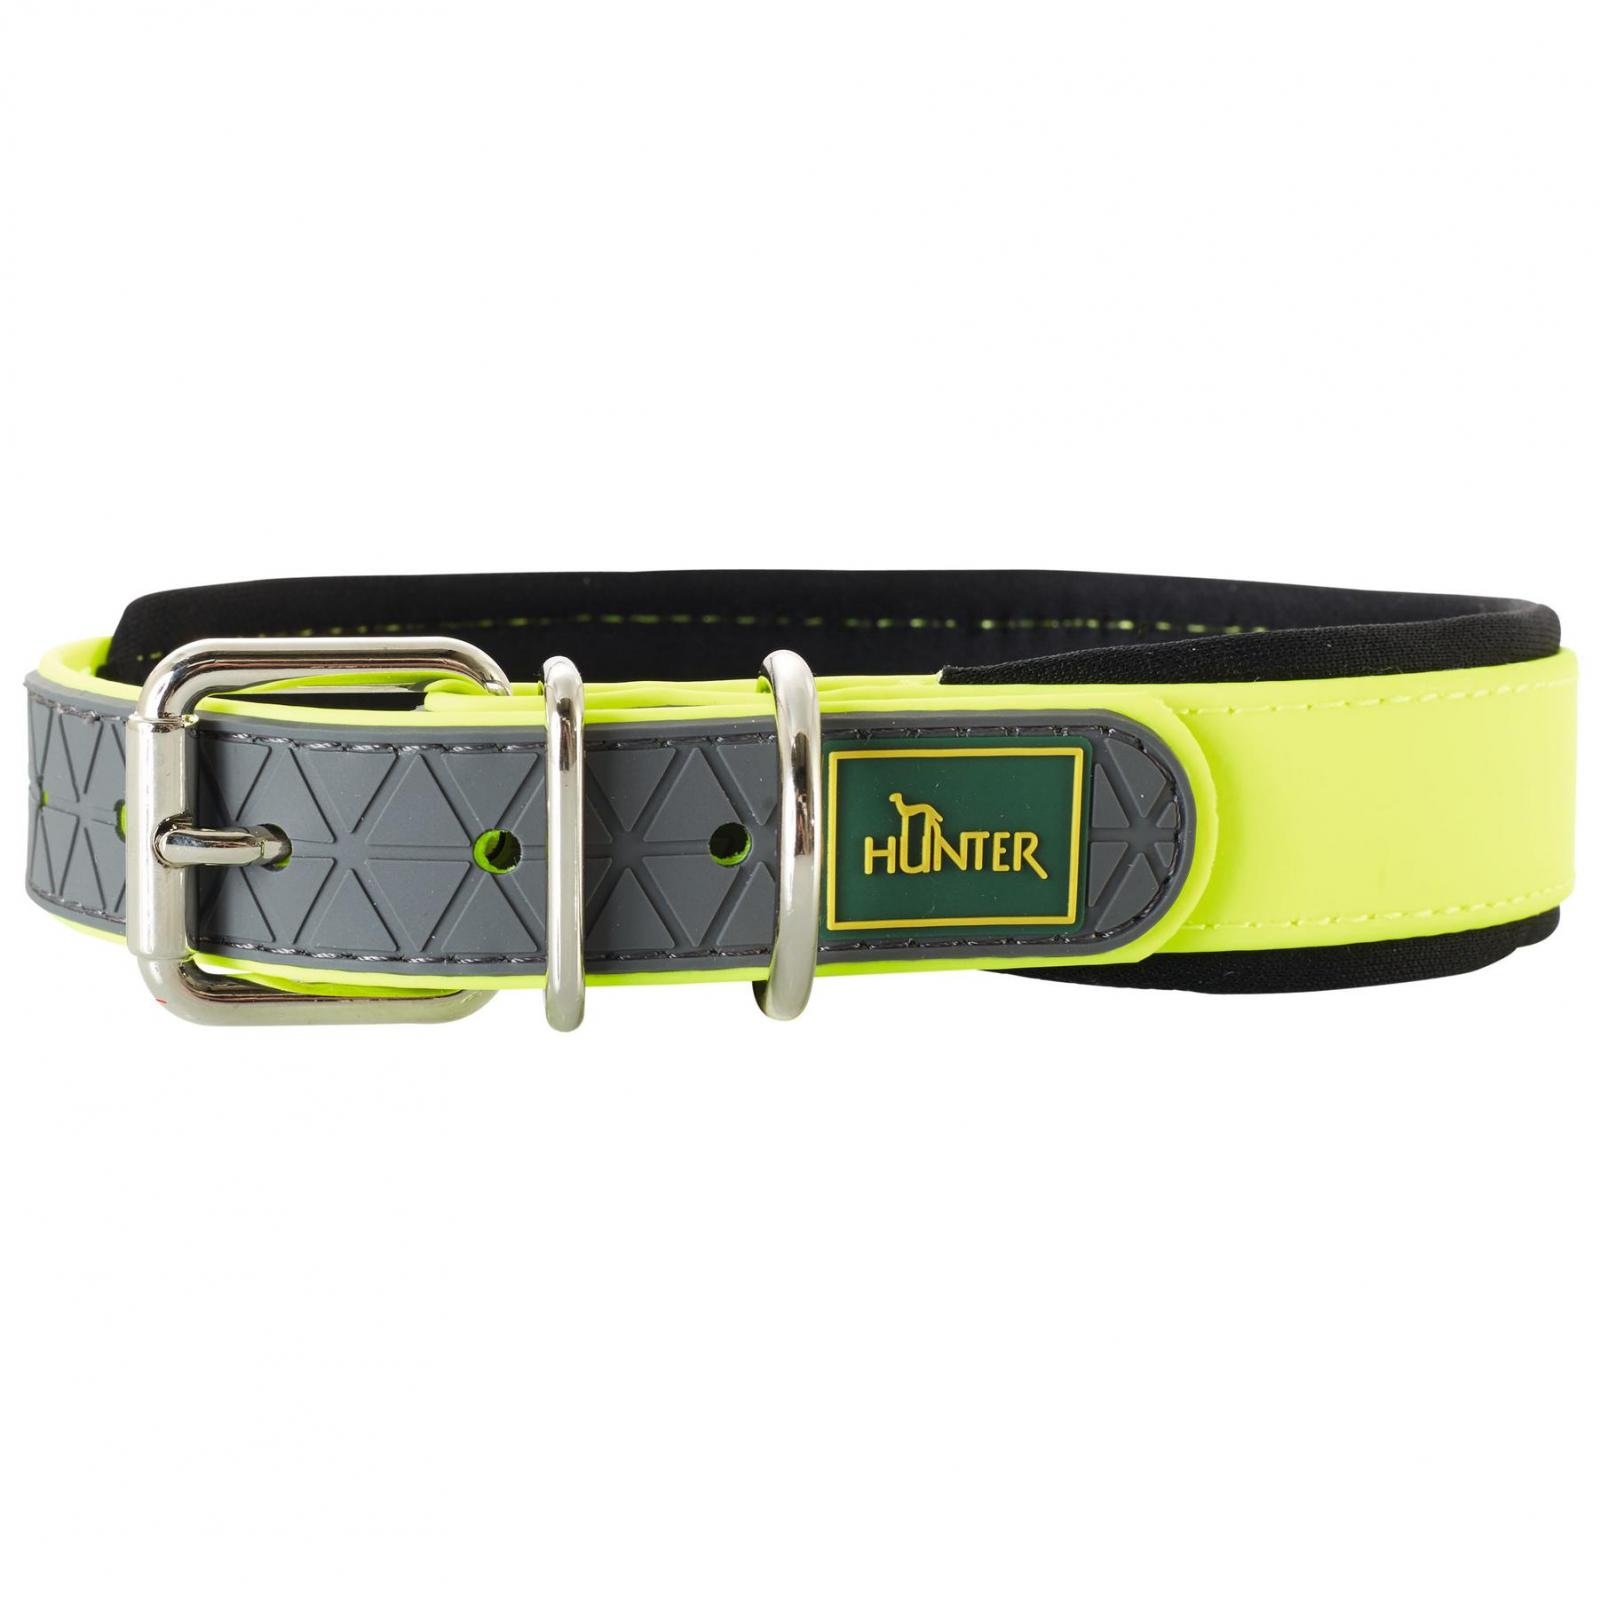 HUNTER Hunter Convenience Comfort Collar